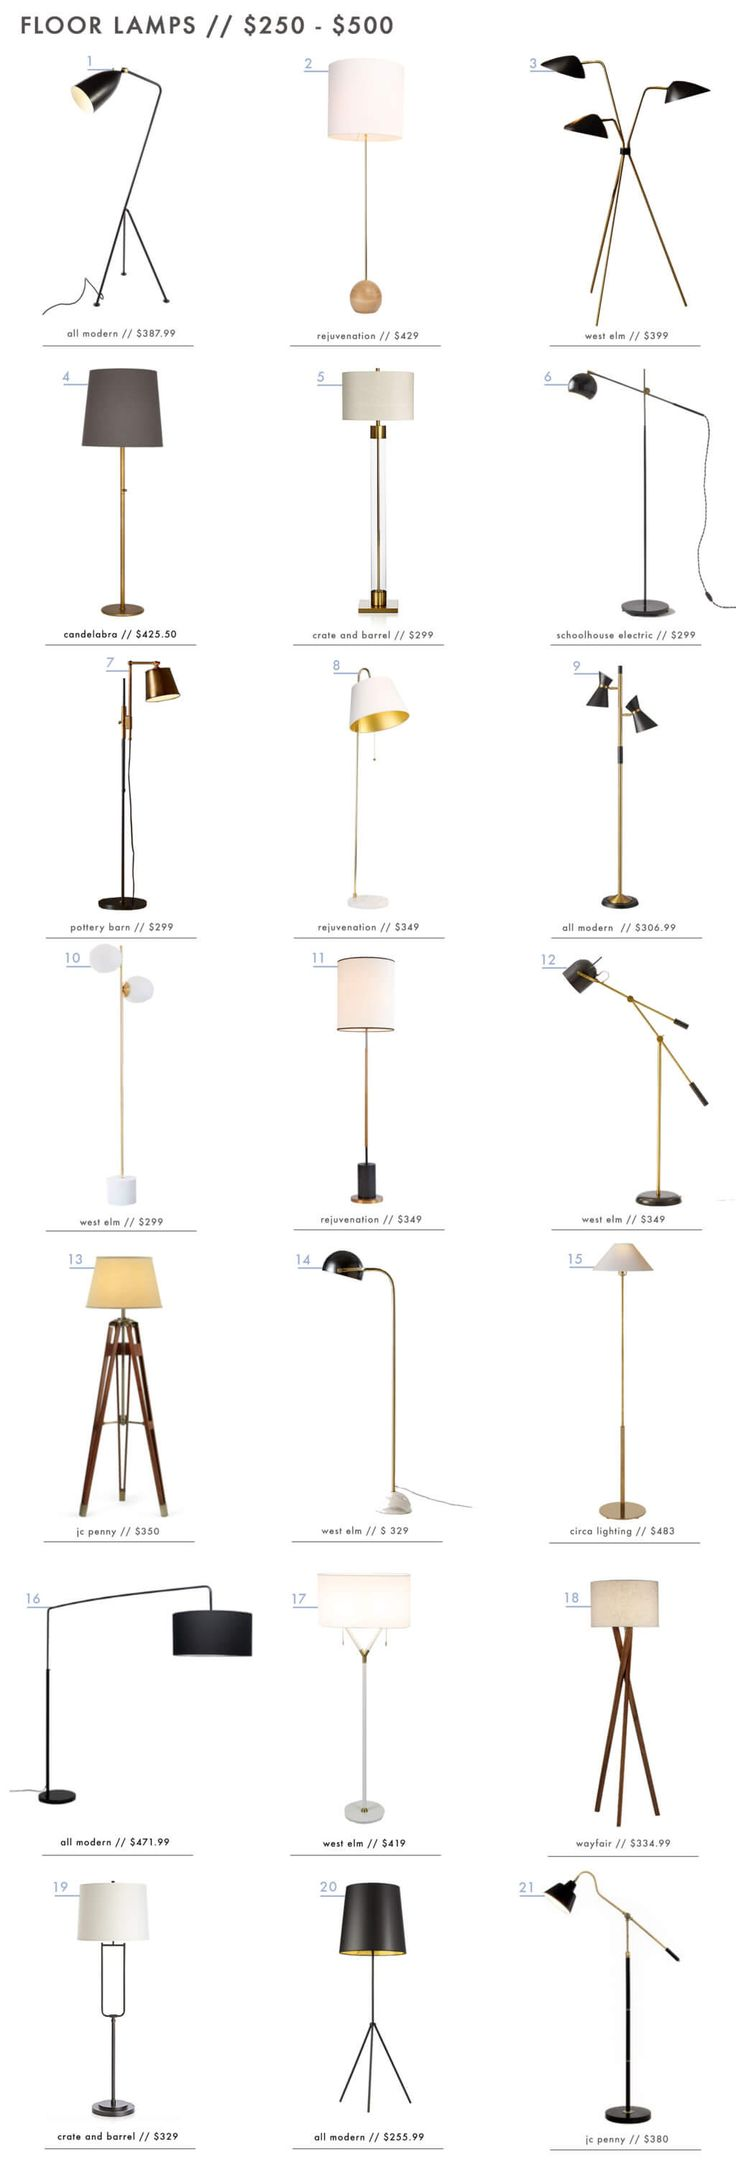 When it comes to lighting in your home the options are endless, and there is nothing worse than picking out the wrong piece that ultimately doesn't do the right job and bums you out every time you turn it on. There is a reason ABC spends a small fortune lighting those perfect vignettes that we watch... Read More …